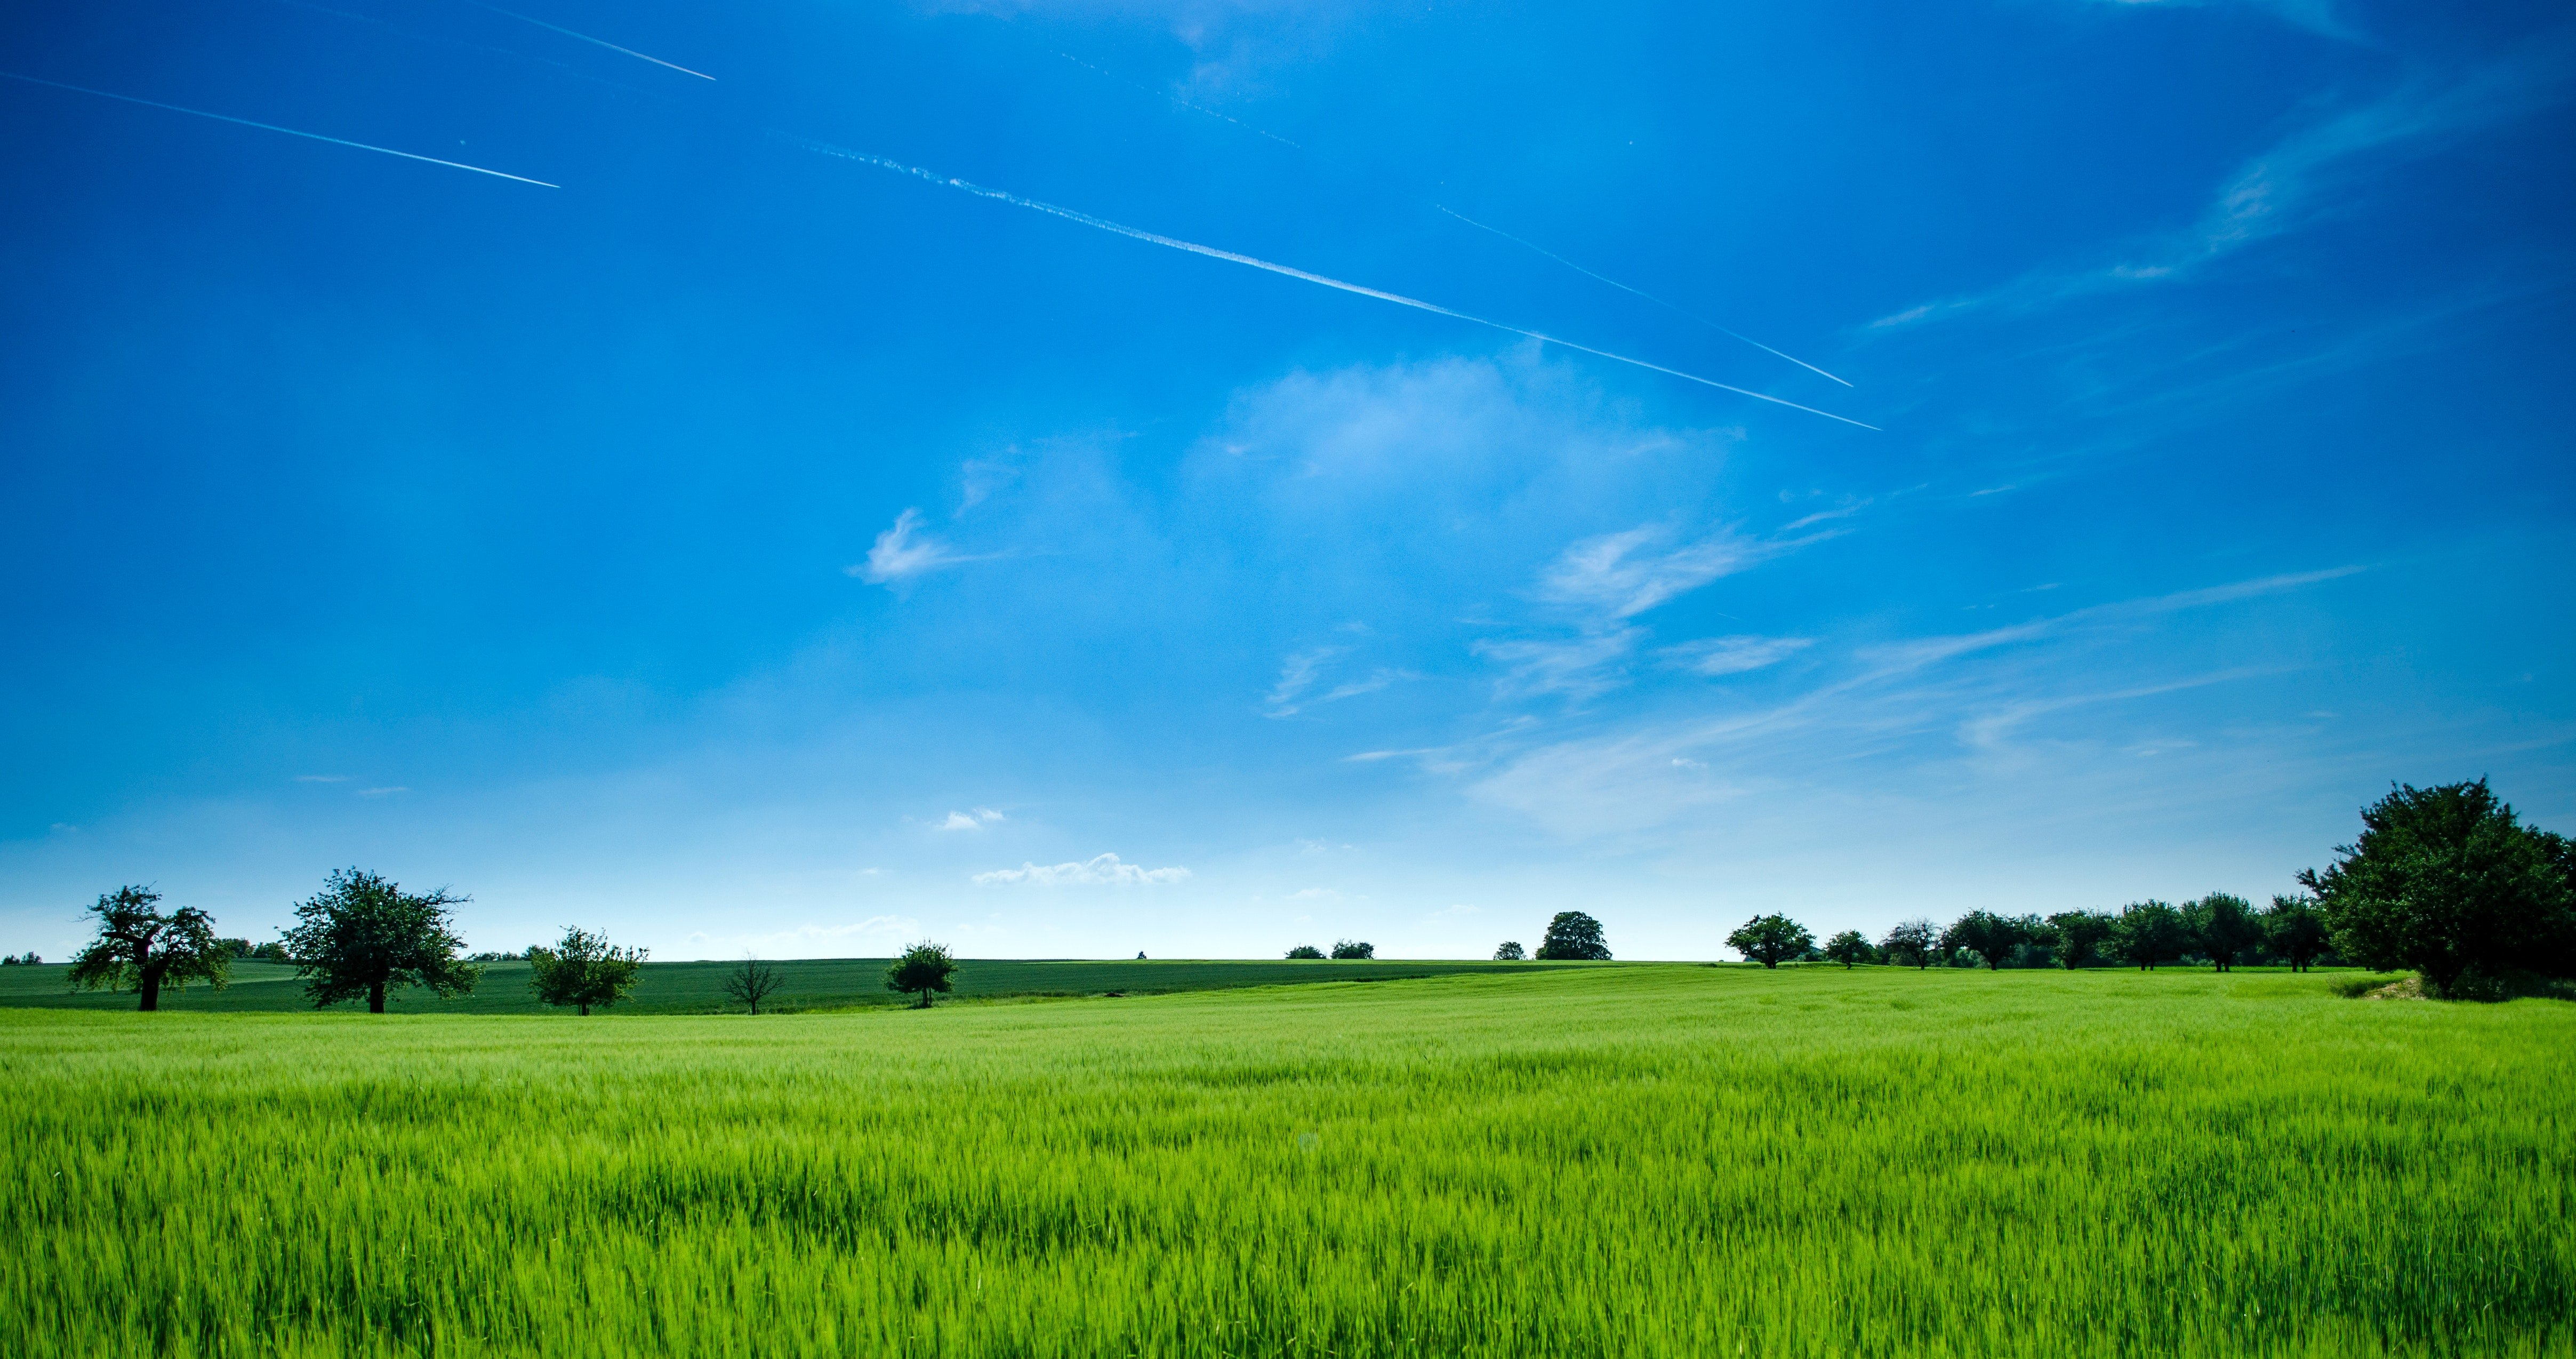 Photo - A photo of a green field and a clear blue sky |  Source: Pexels